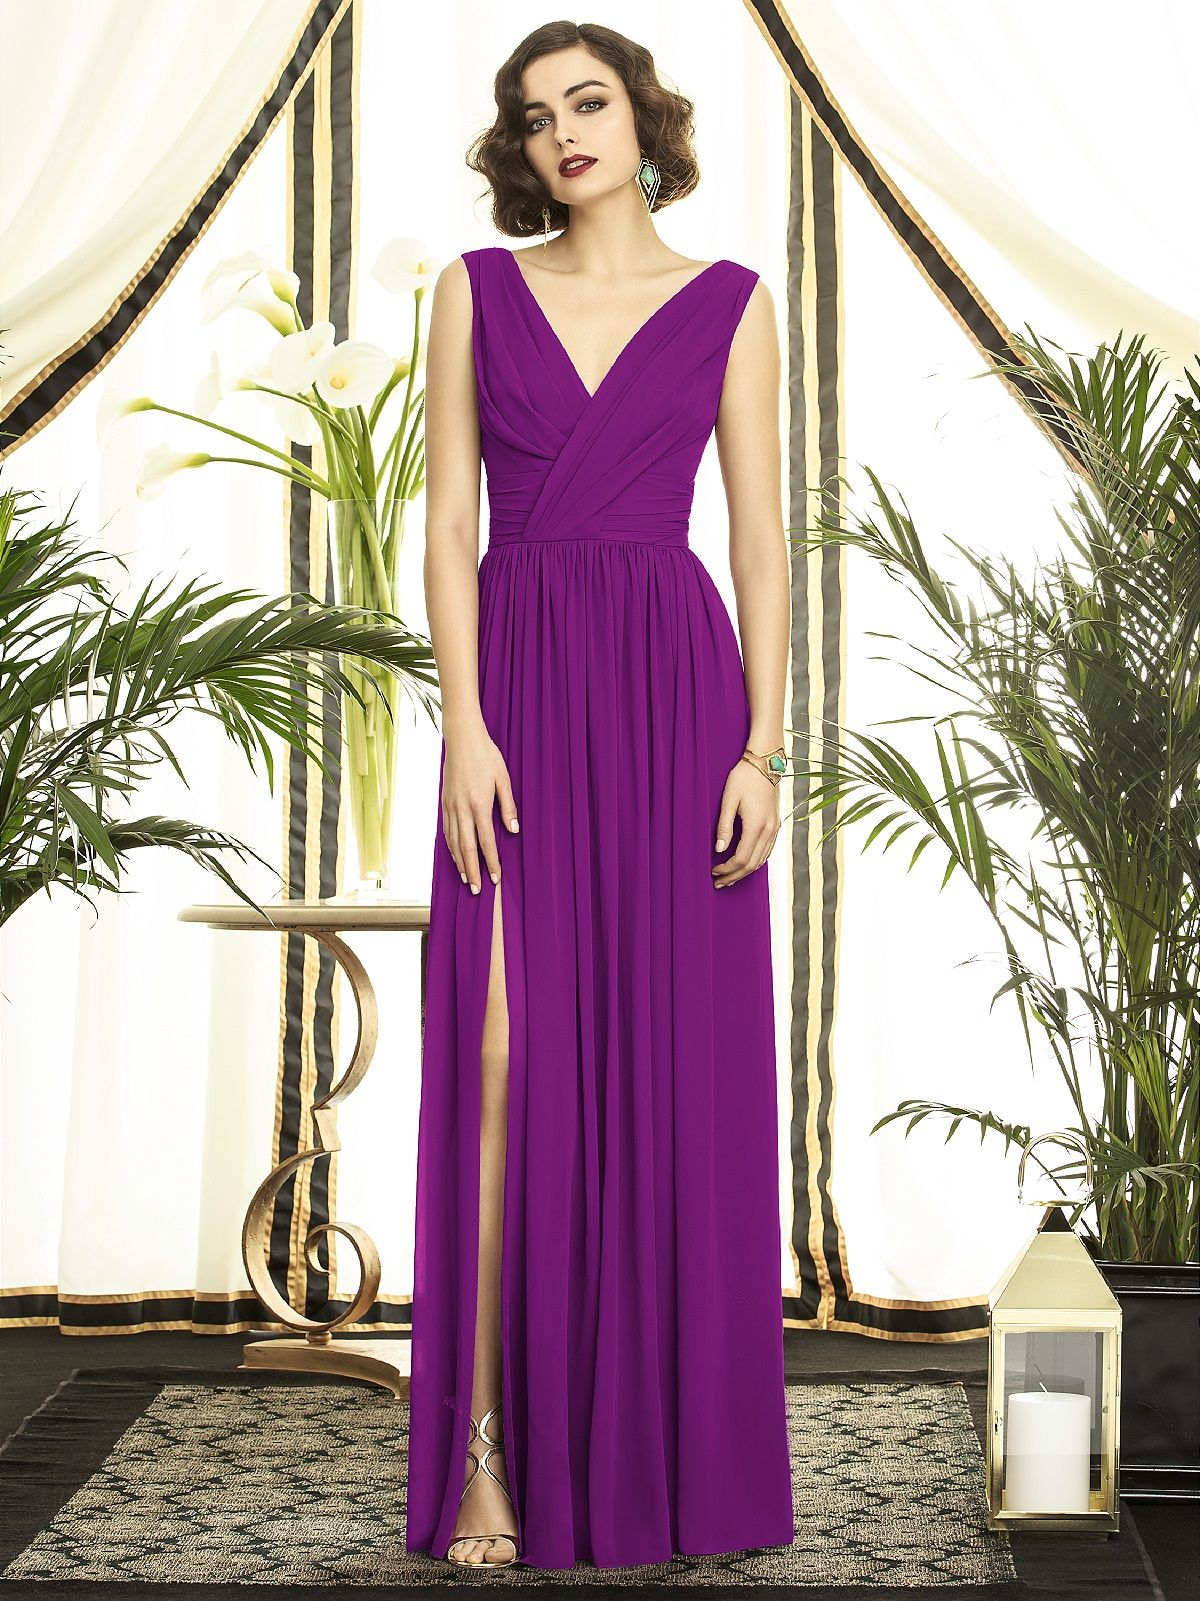 Dessy collection style 2894 bridal parties hollywood wedding dessy collection style 2894 dessy bridesmaidpurple bridesmaid dresseswedding ombrellifo Choice Image